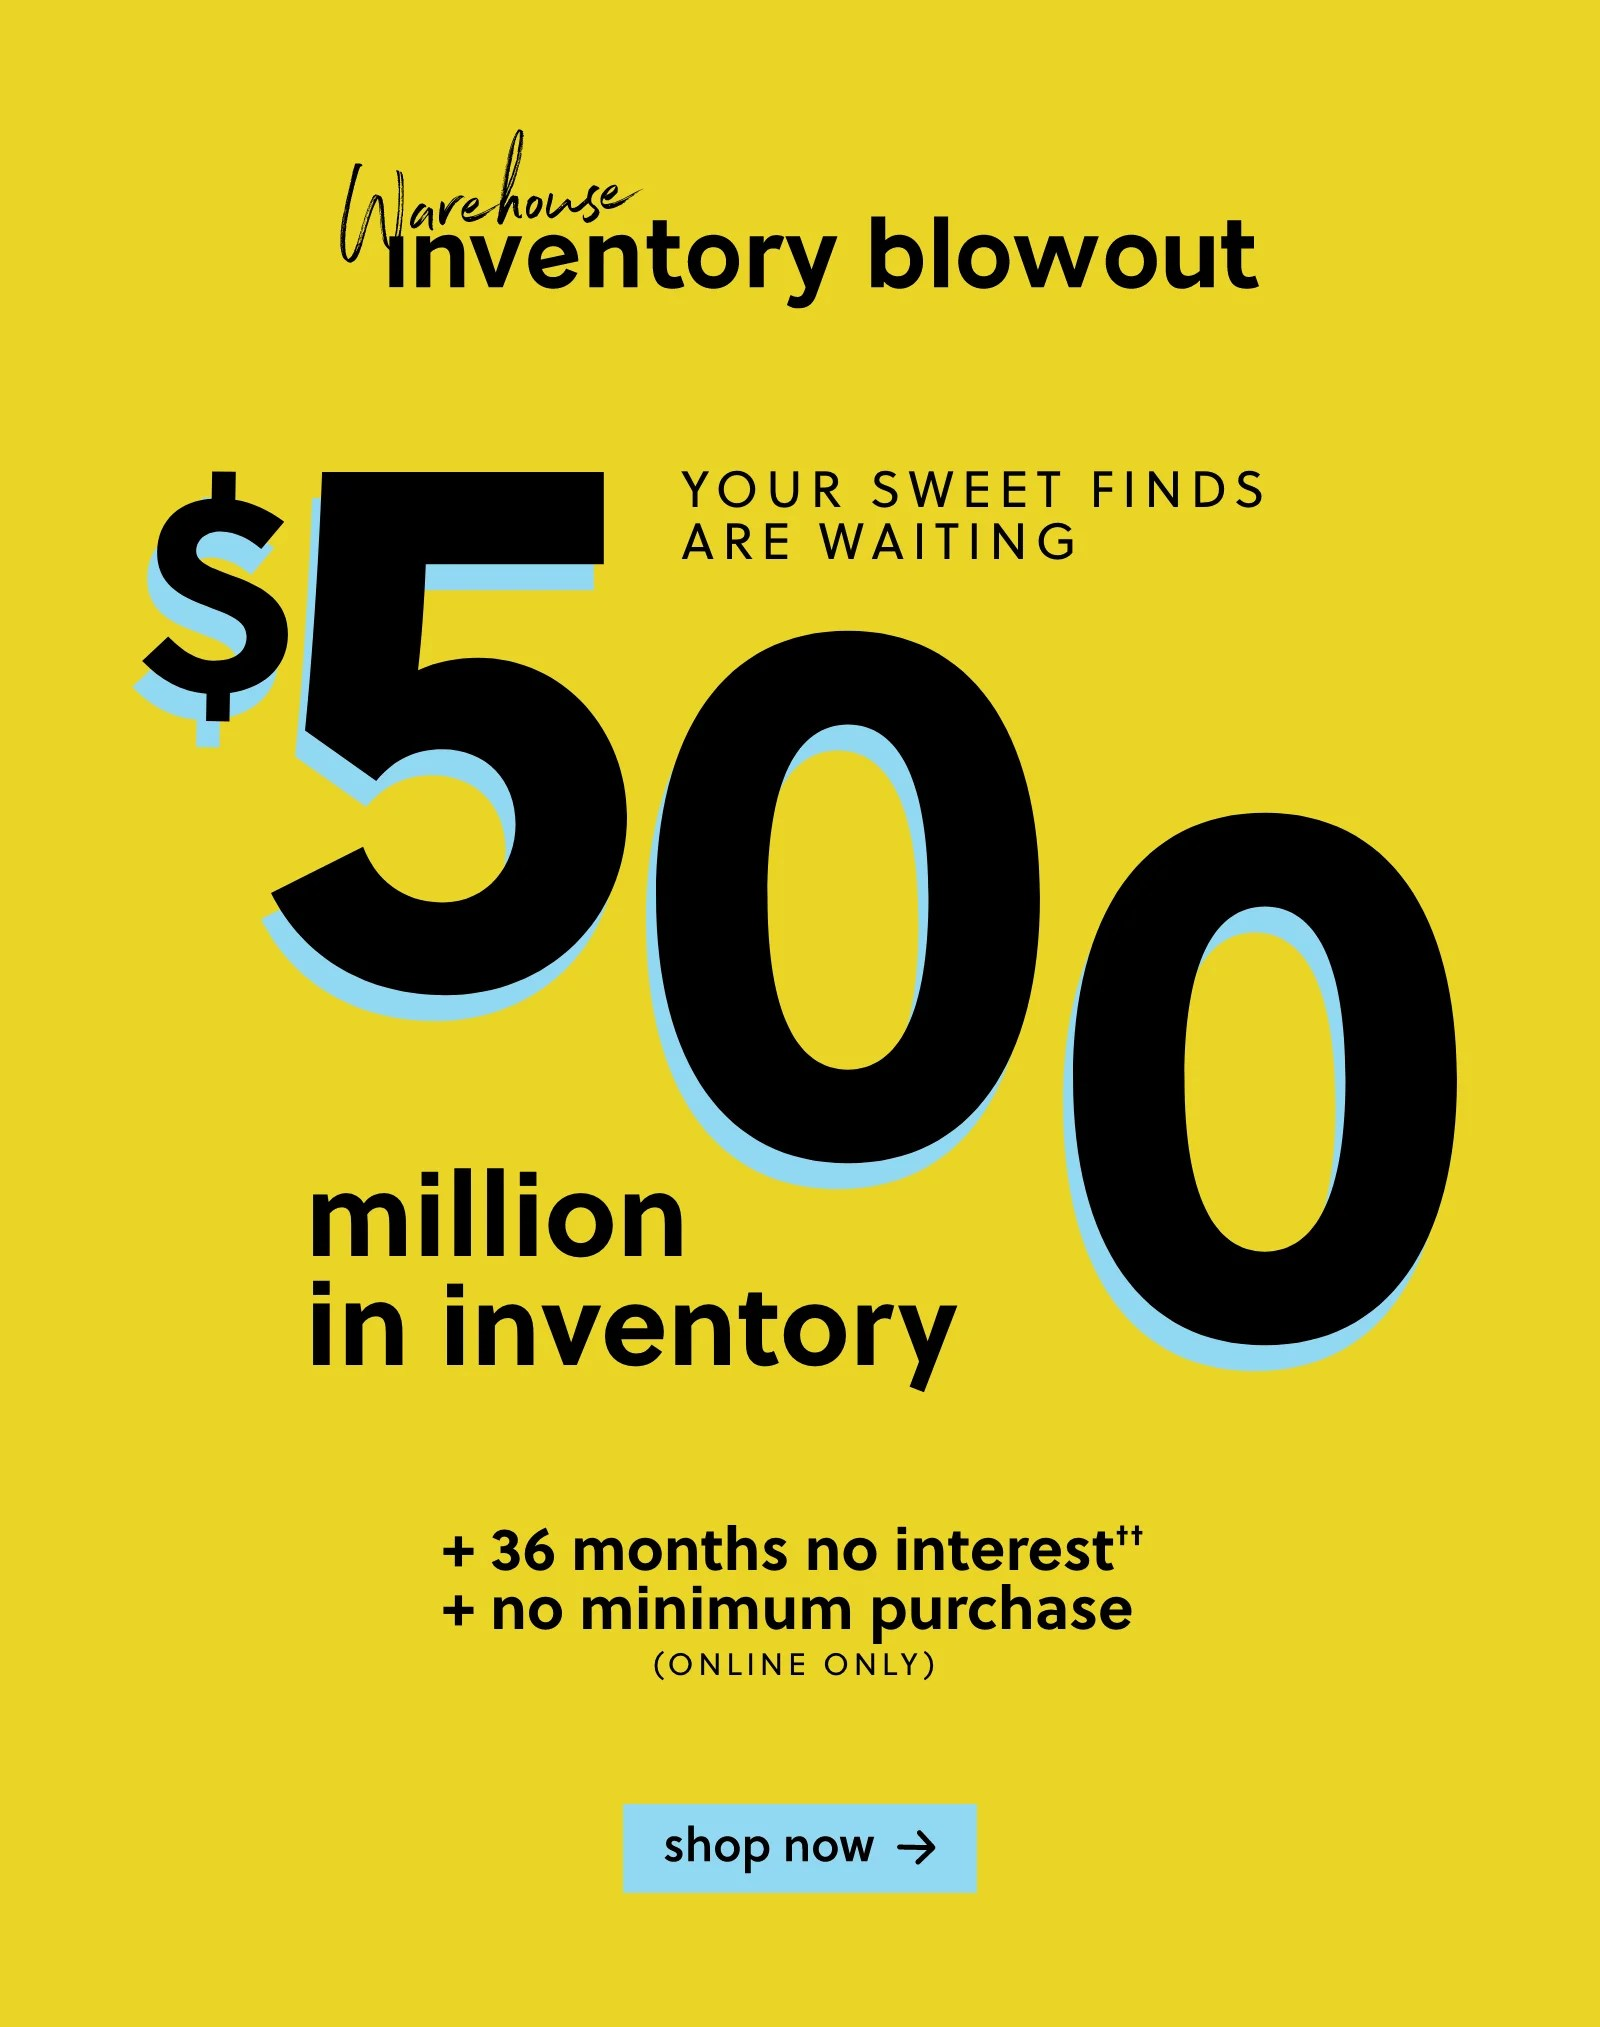 Ashley Furniture Pay My Bill : ashley, furniture, Ashley, Furniture:, Seriously, Joking..., You're, Getting, Sweet, Treat, Warehouse, Inventory, Blowout, Milled